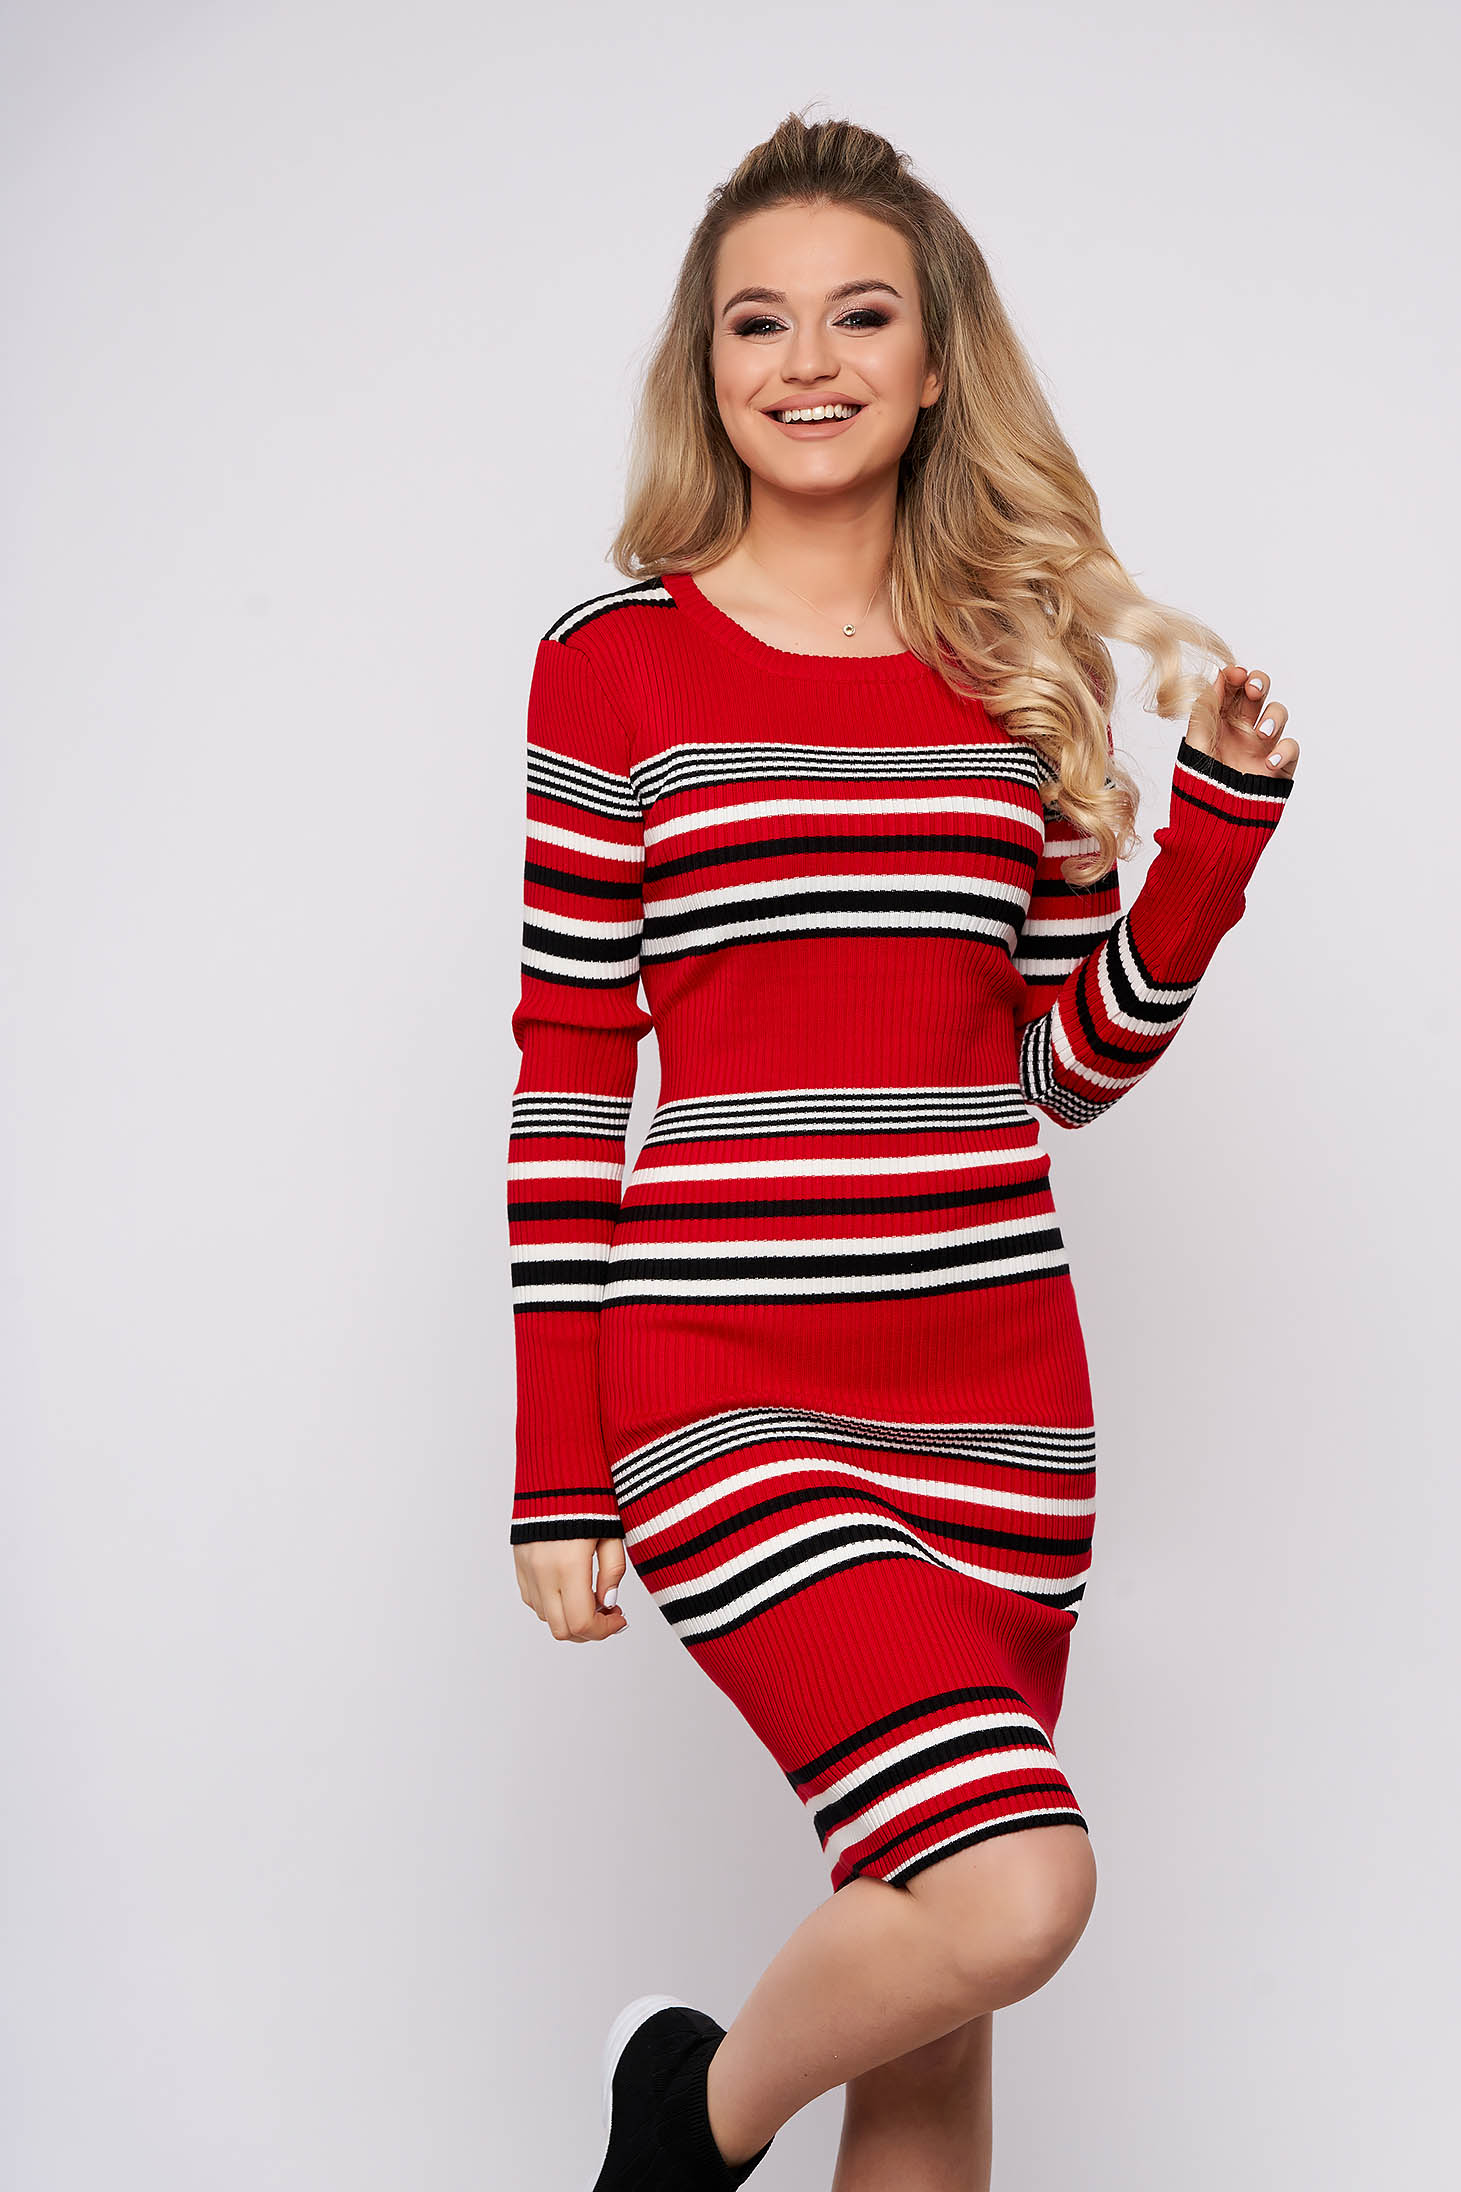 Red dress casual daily midi pencil knitted fabric long sleeved horizontal stripes